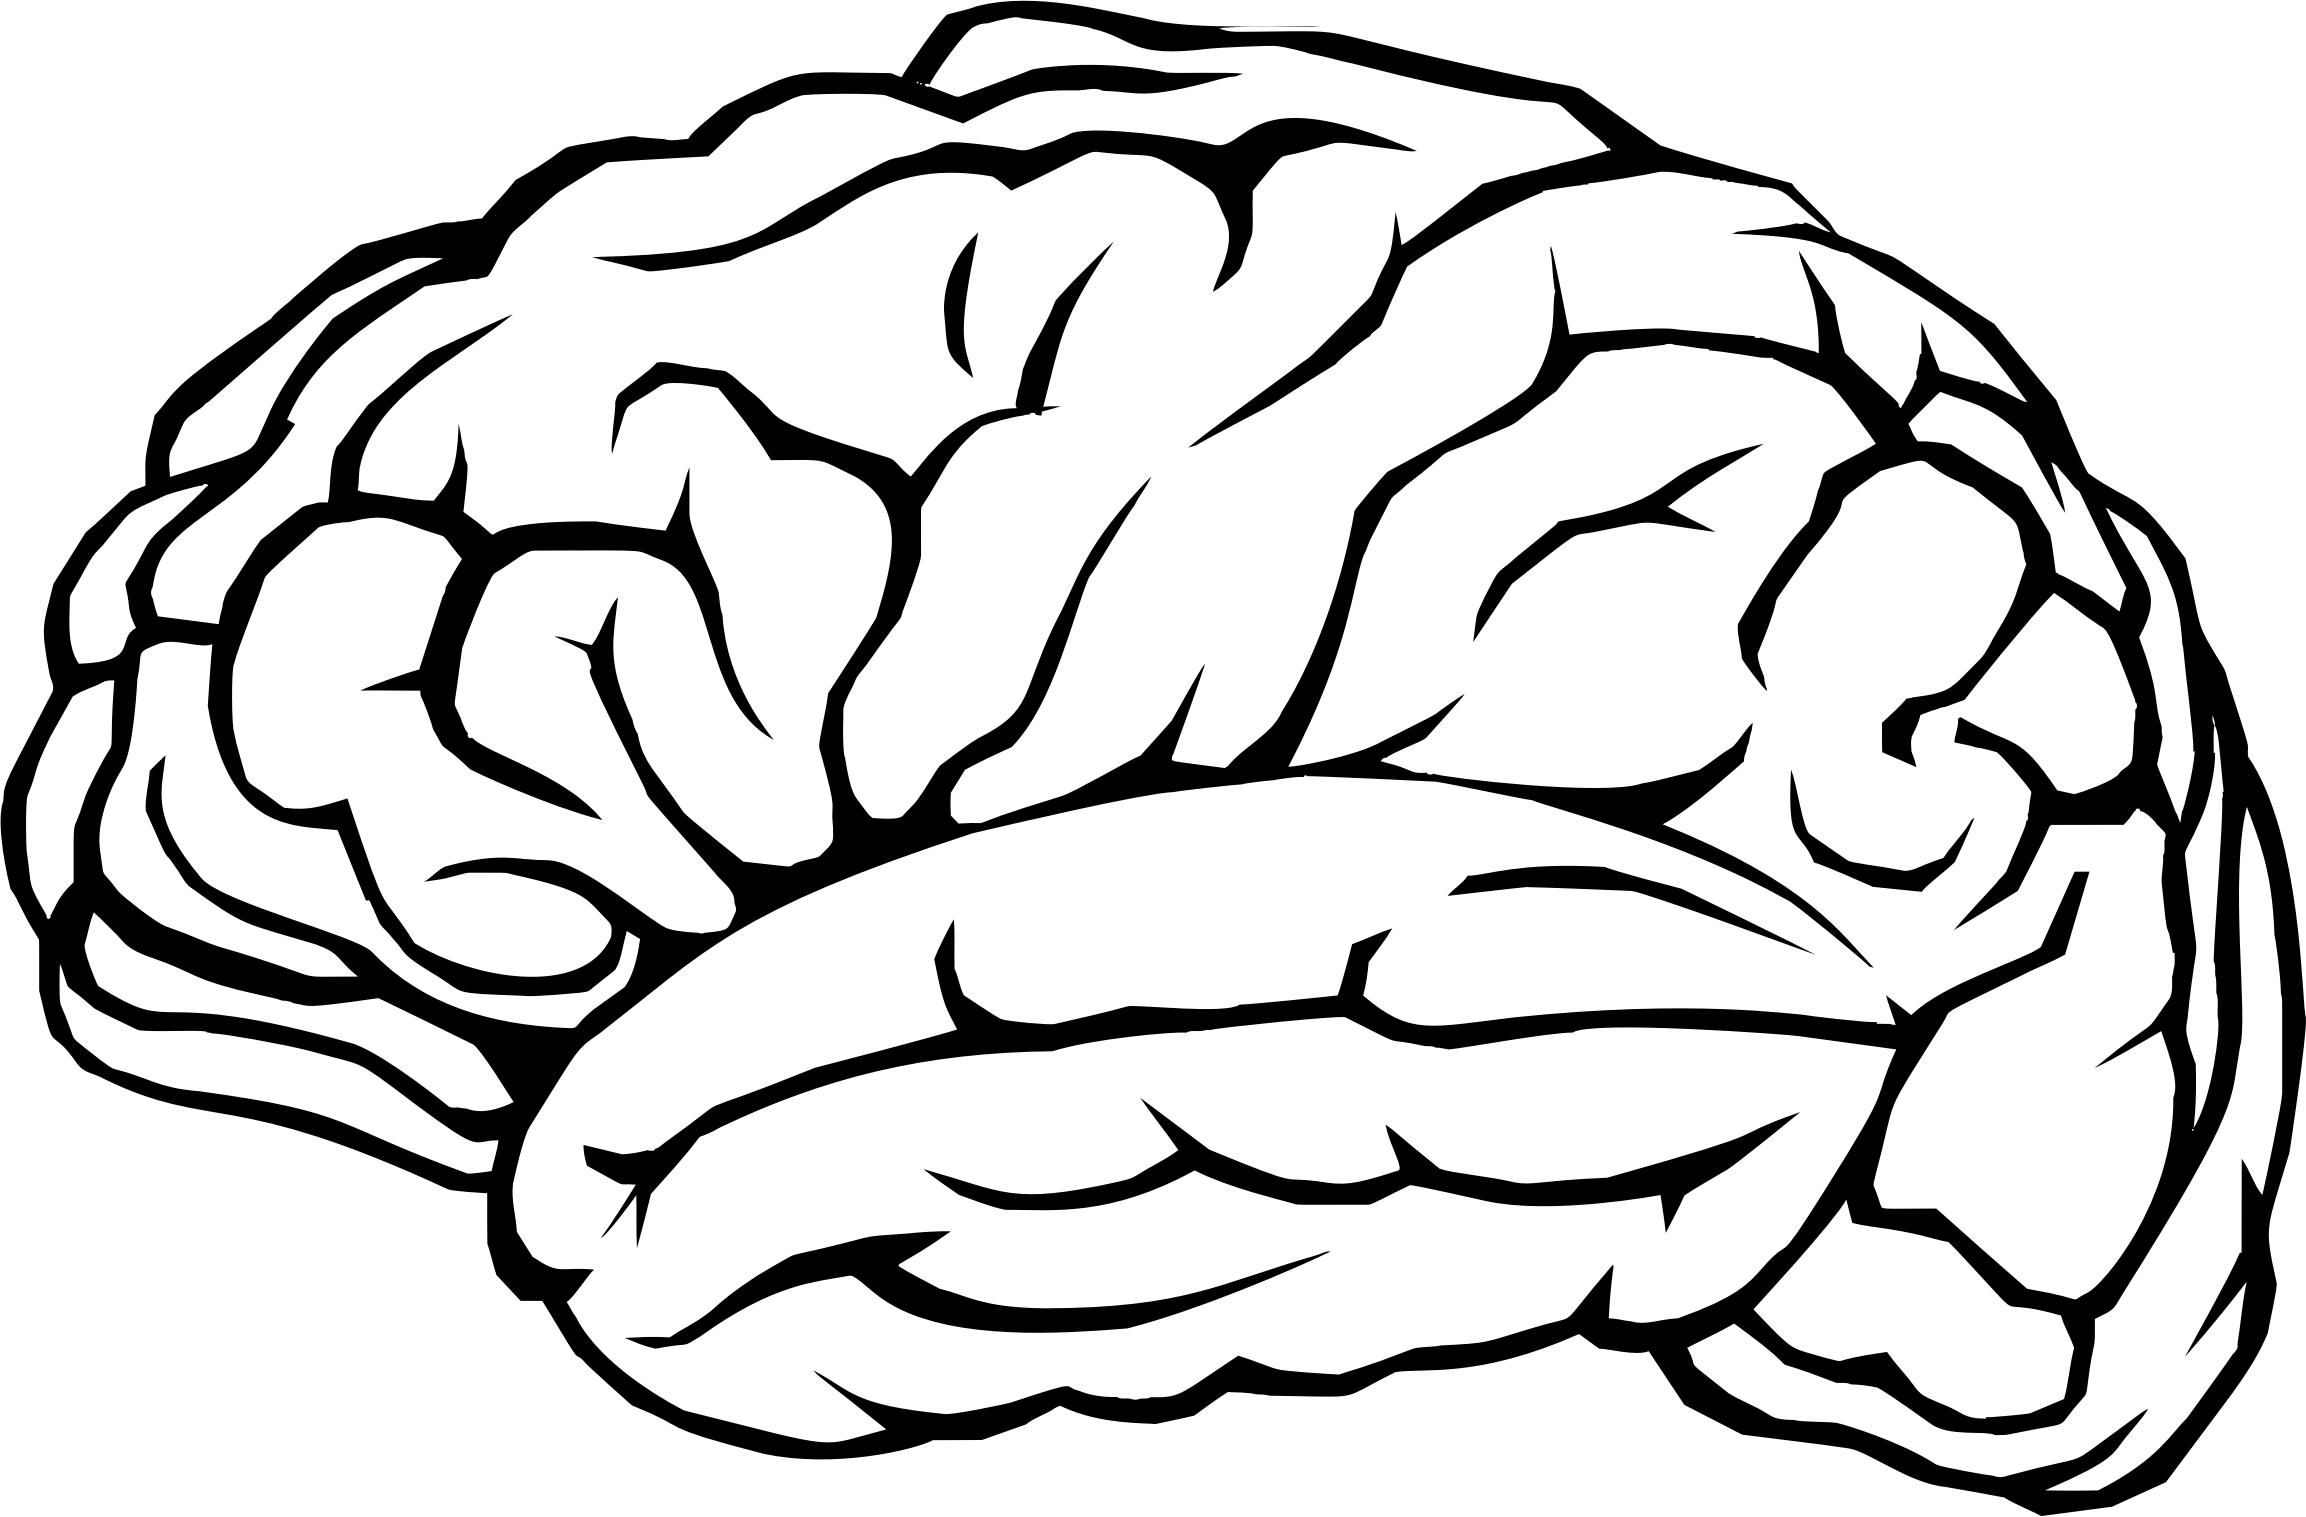 2306x1517 Brain Profile Line Art Icons Png